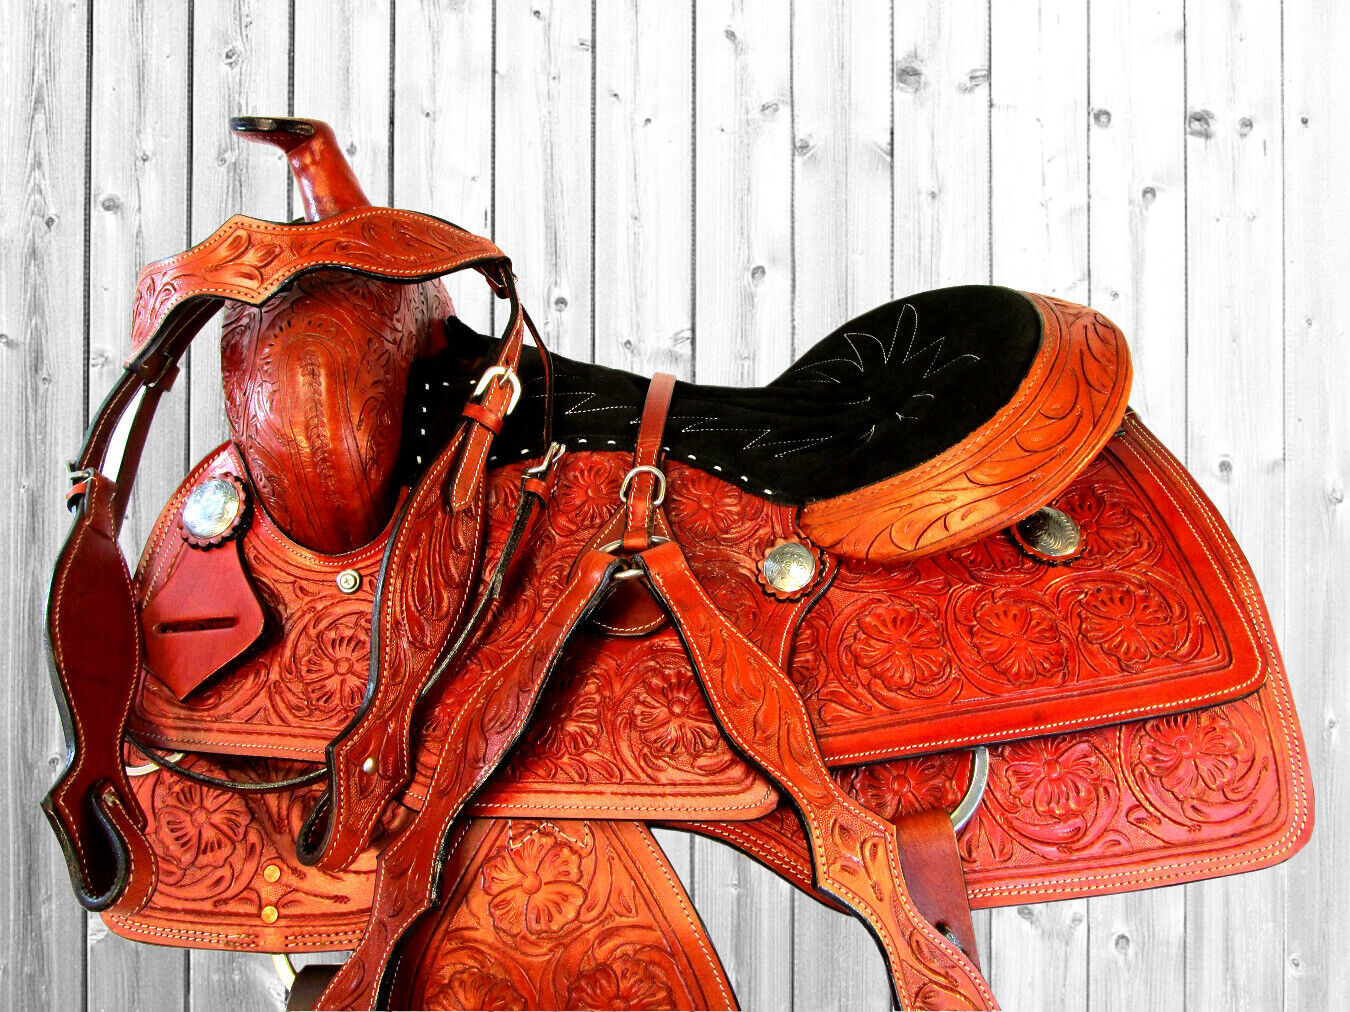 16 17 PLEASURE TRAIL SELLE  PER CAVALLI TOOLED LEATHER WESTERN ROPING SADDLE SET  cheapest